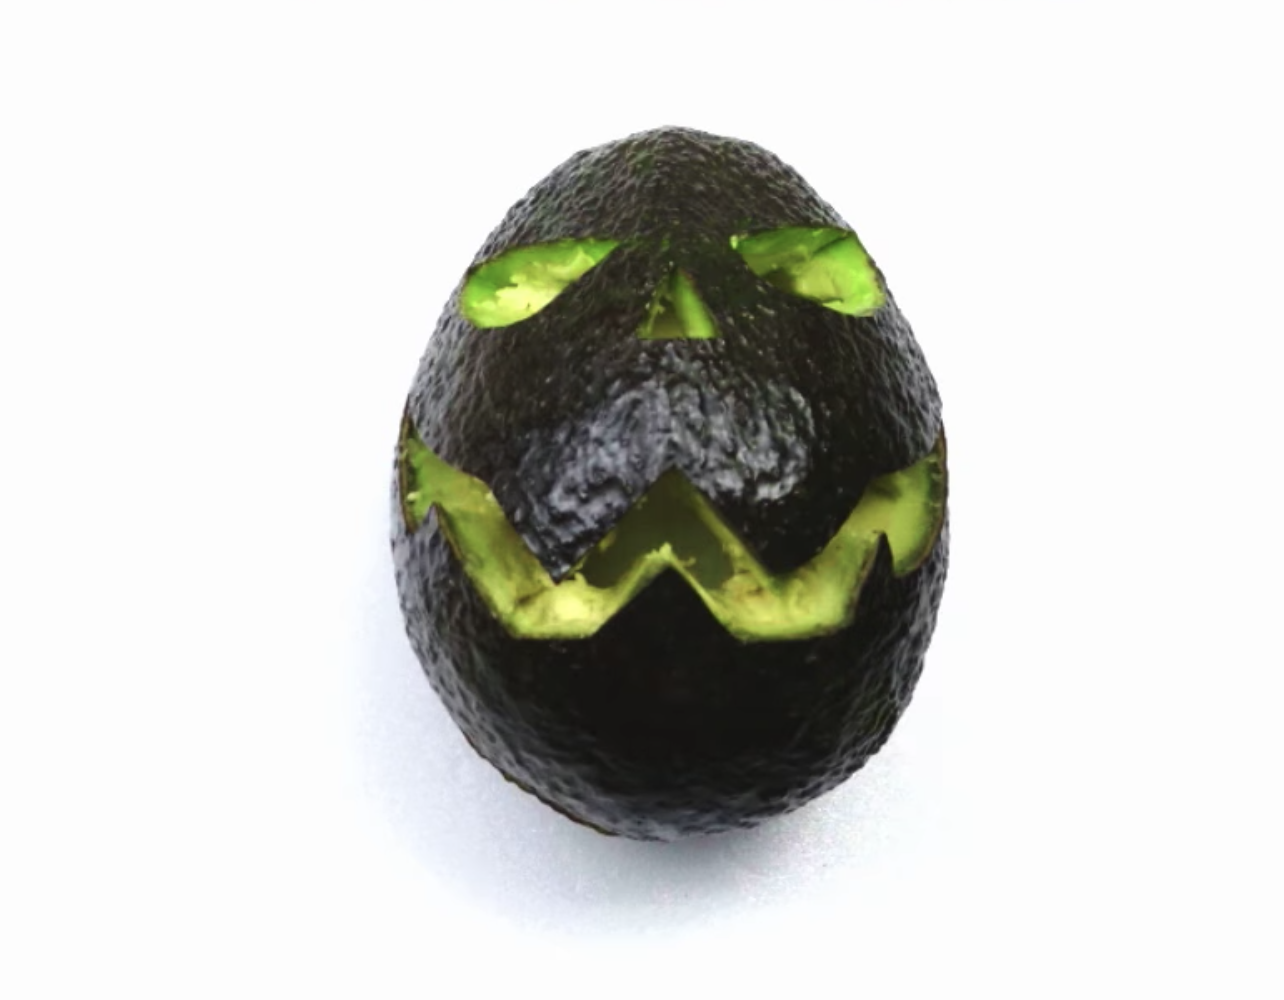 Forget Pumpkins: Here's How To Turn An Avocado Into A Jack-O'-Lantern